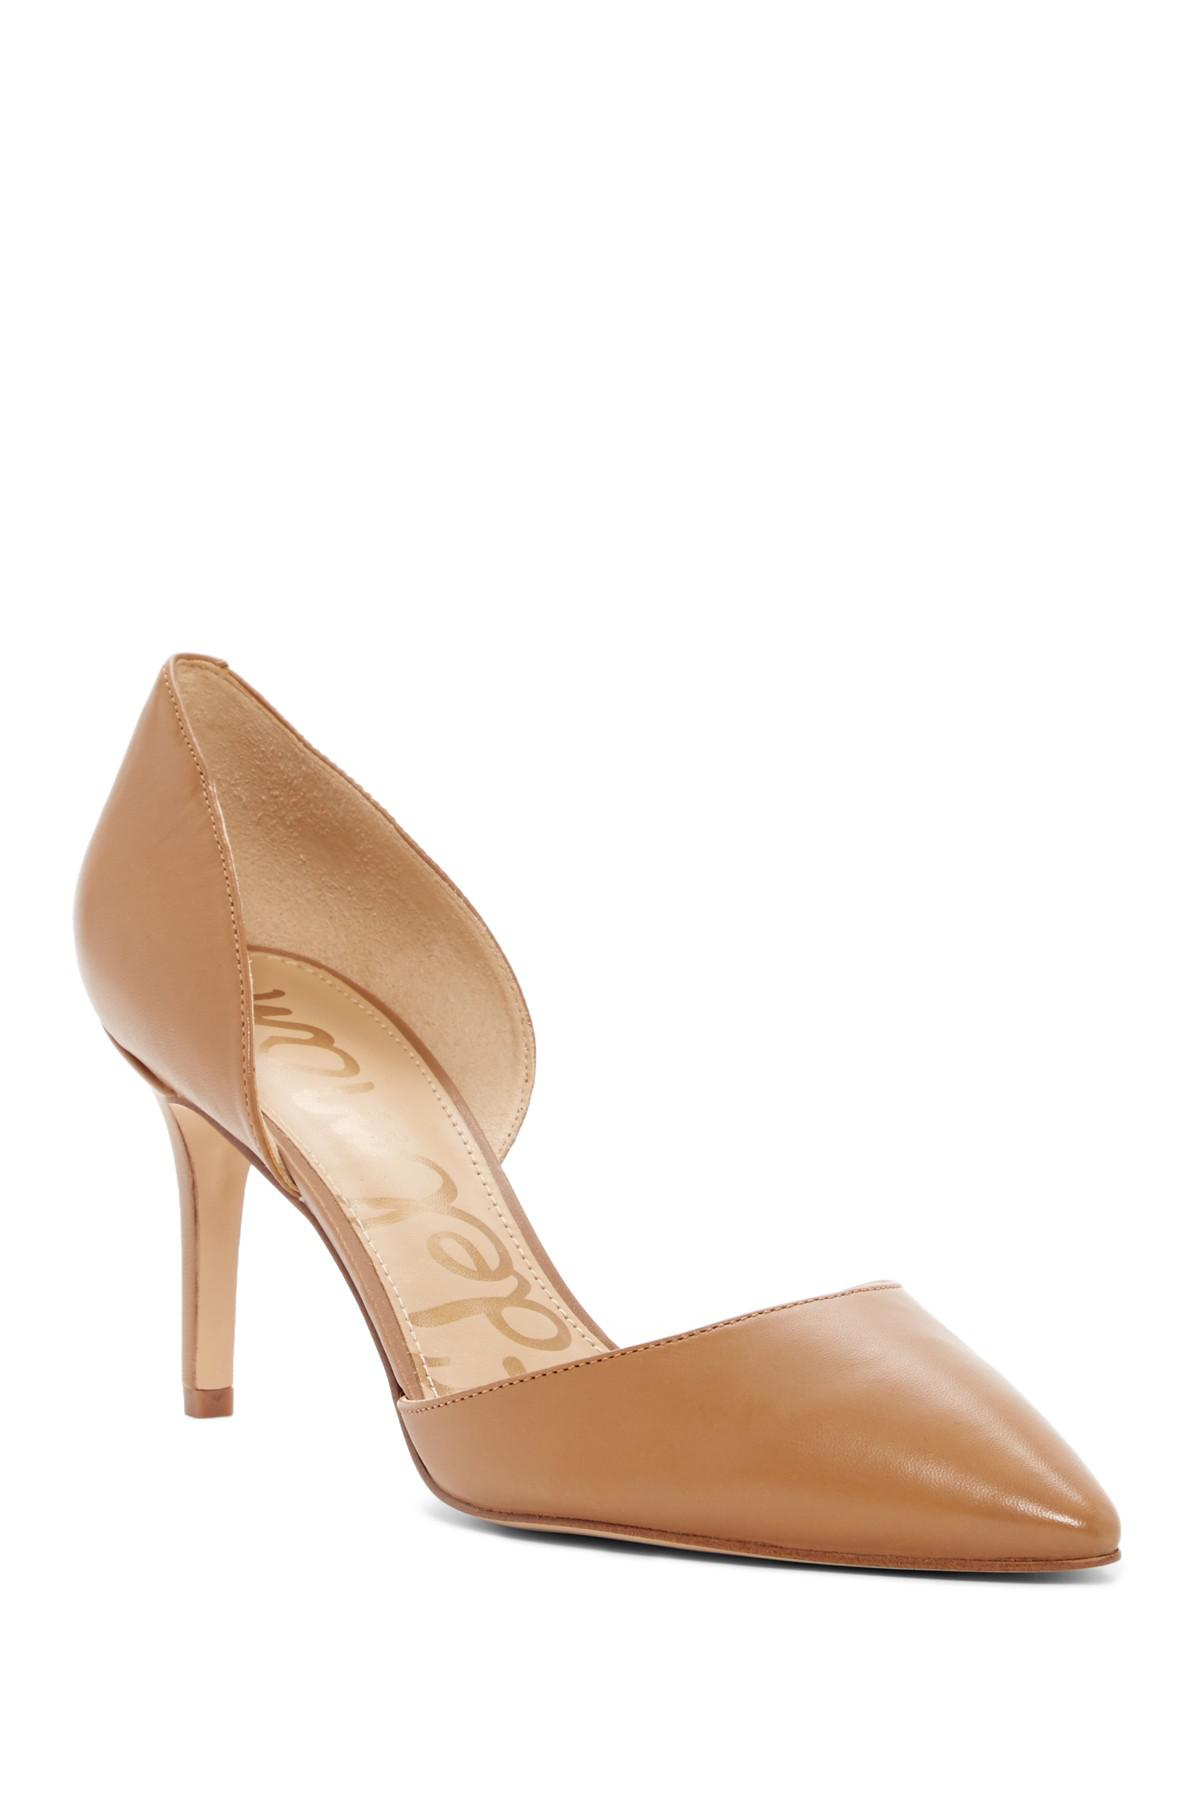 54e375971 Gallery. Previously sold at: Nordstrom Rack · Women's Pointed Toe Pumps ...